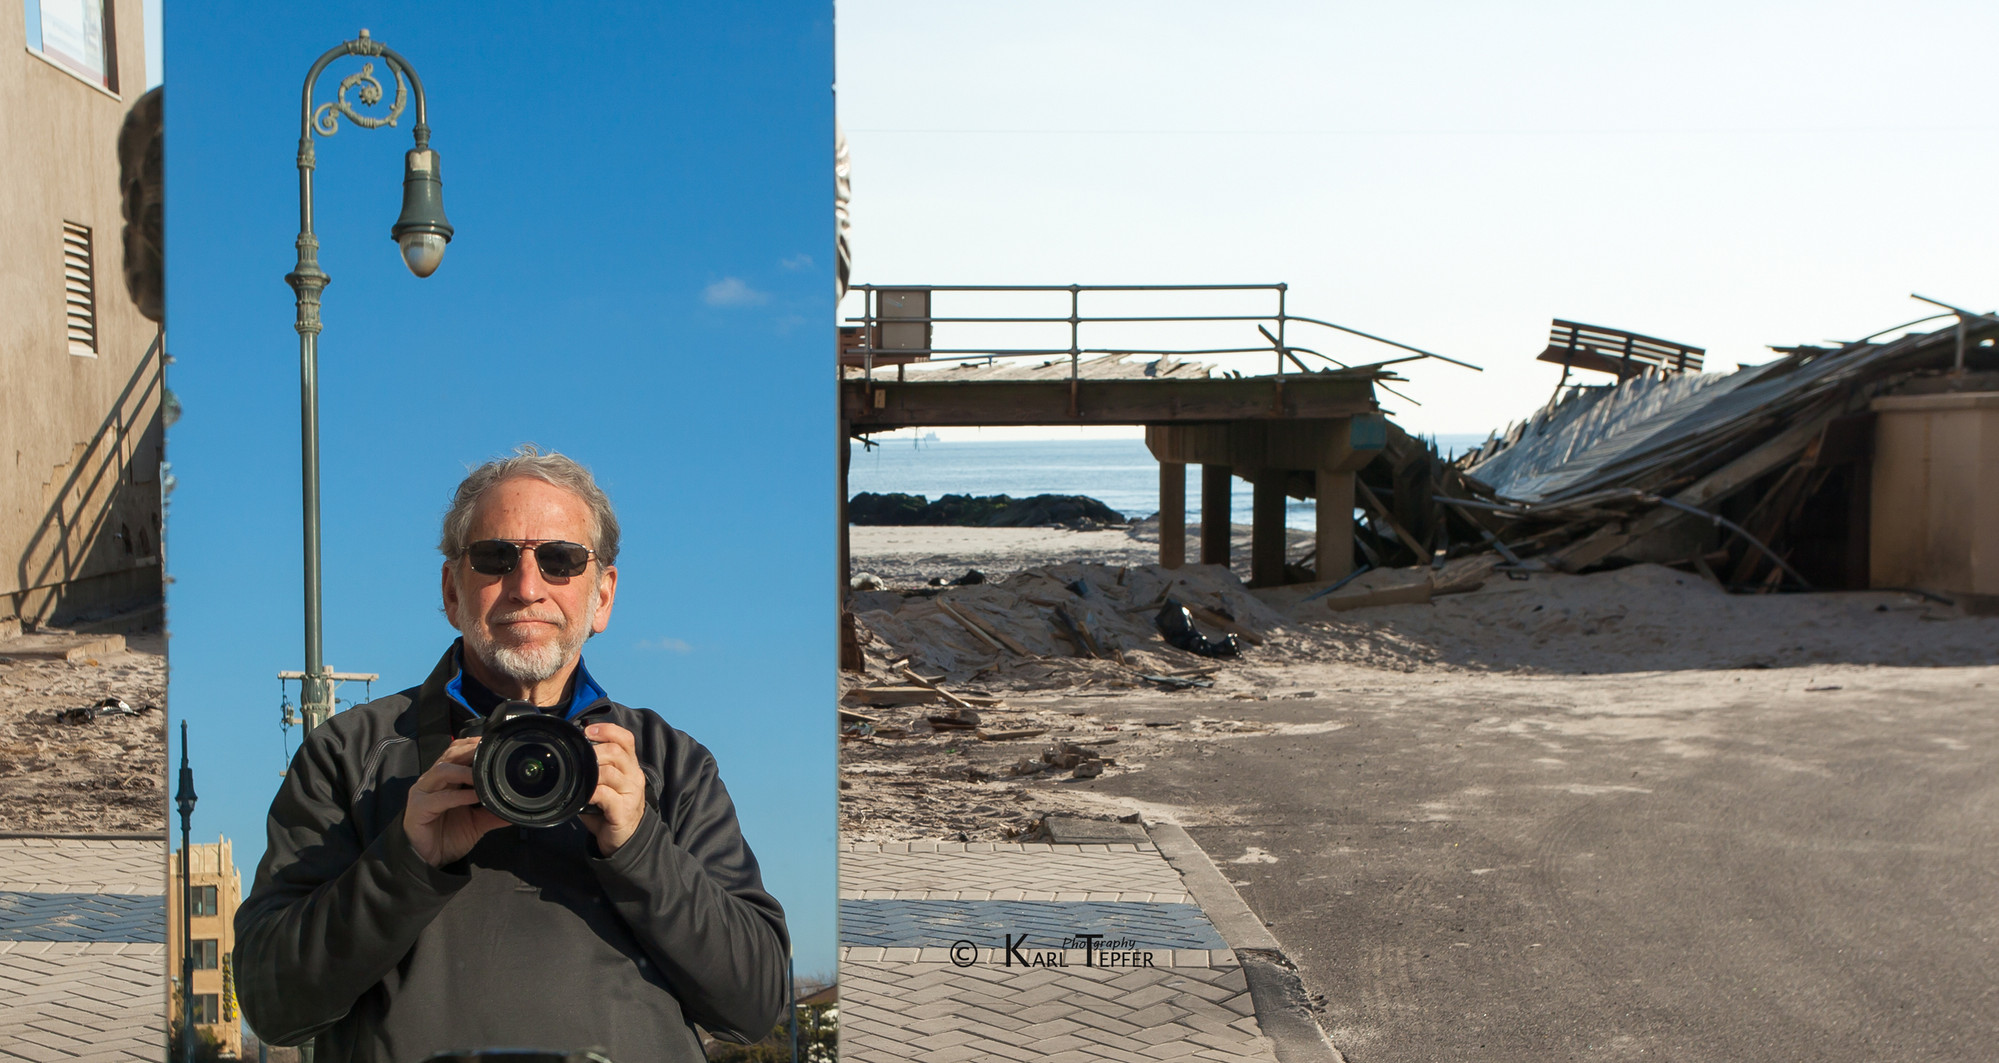 Bellmorite Karl Tepfer, in a self-portrait taken in a mirror by the Long Beach boardwalk after Hurricane Sandy destroyed it, is pursuing a photography career in his retirement from school psychology.